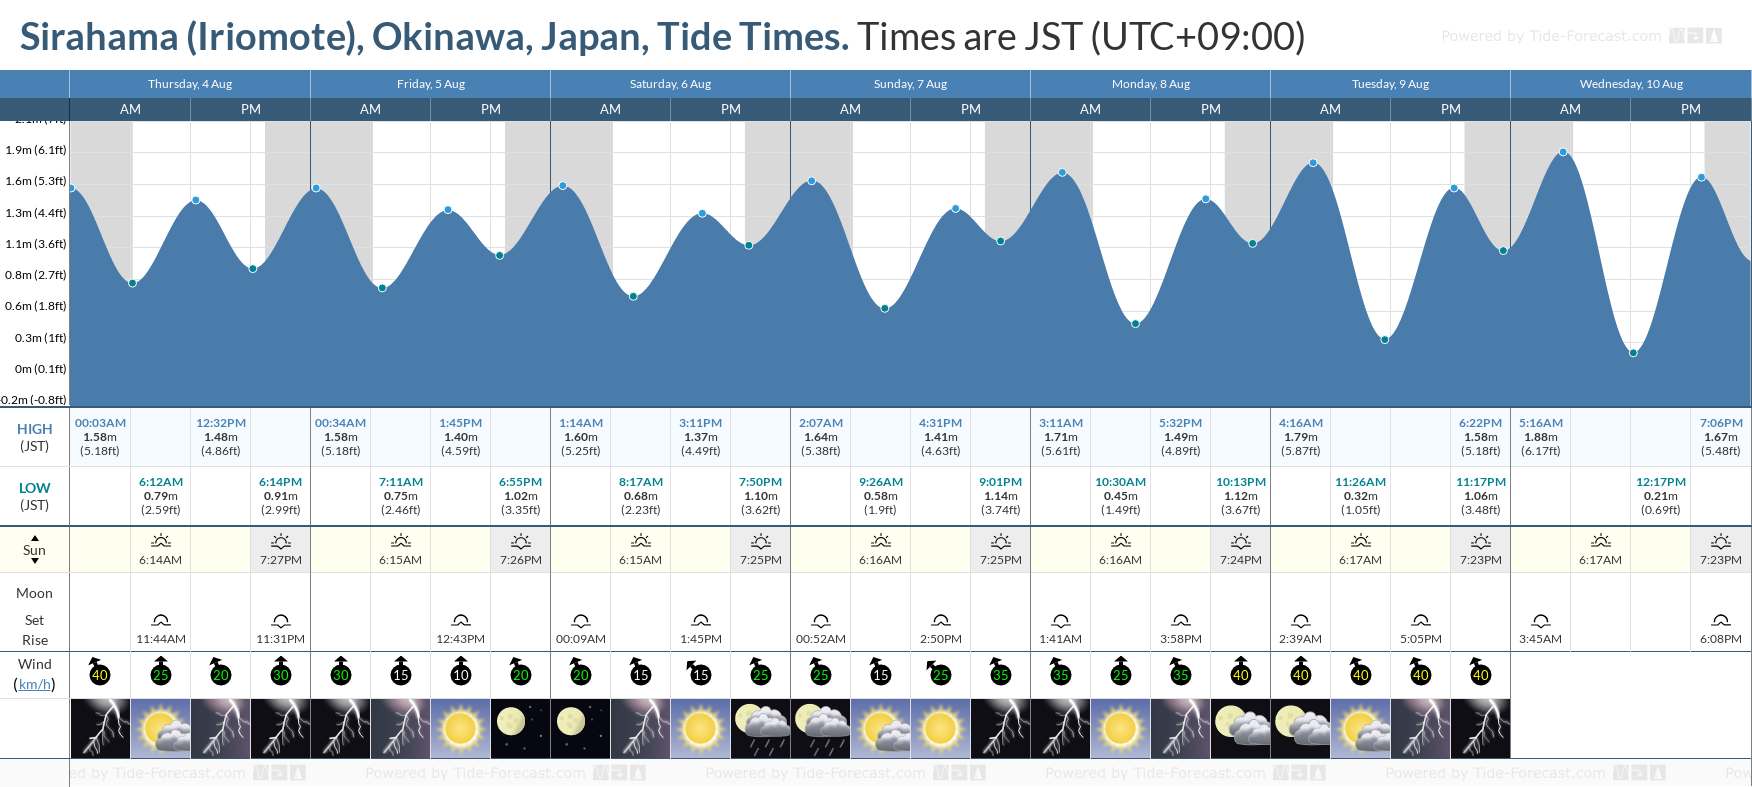 Sirahama (Iriomote), Okinawa, Japan Tide Chart including high and low tide tide times for the next 7 days